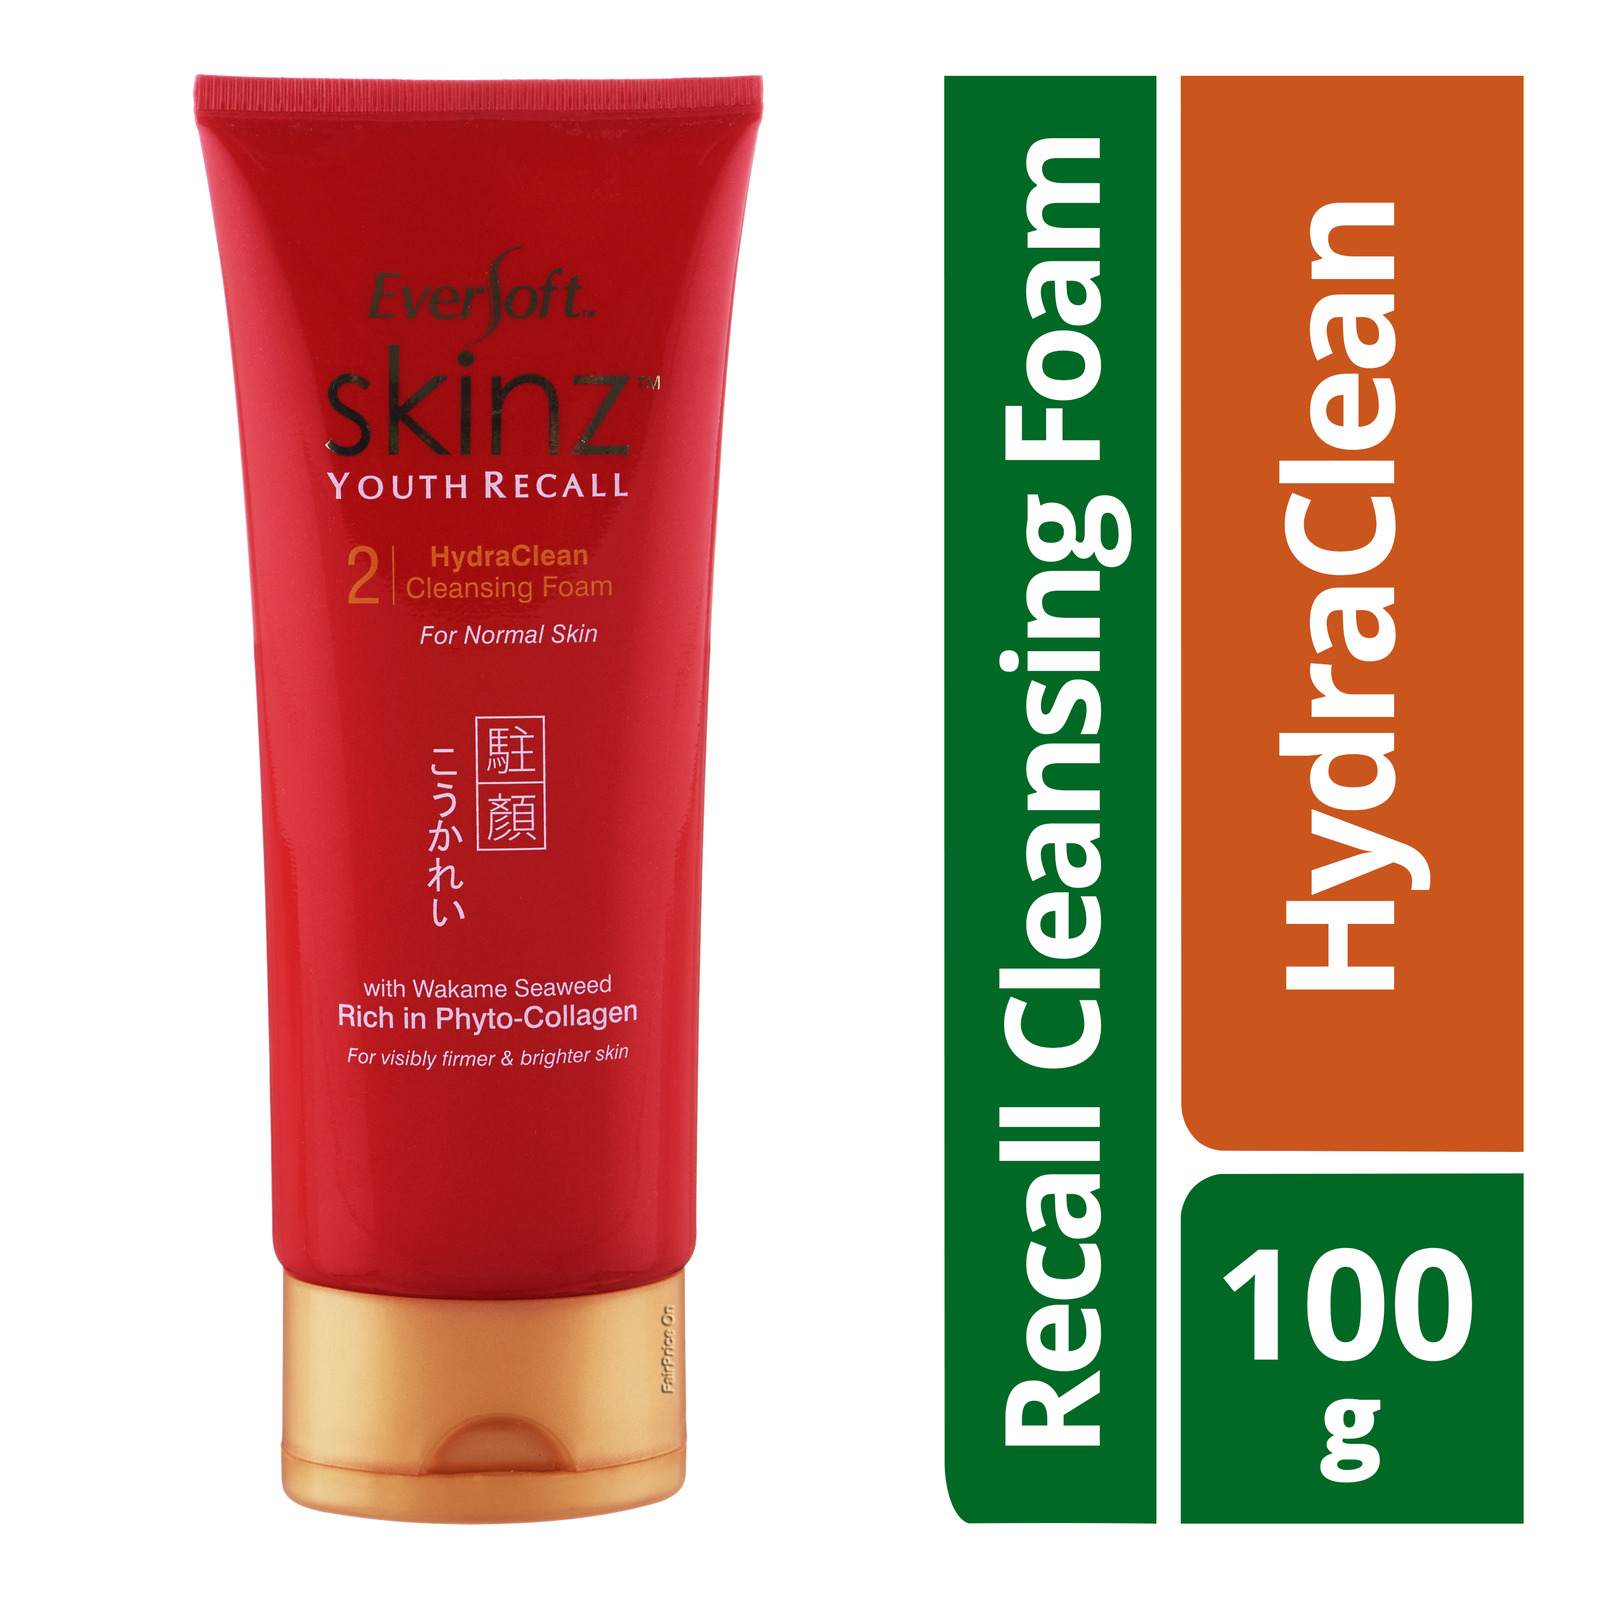 Eversoft Skinz Youth Recall Cleansing Foam - HydraClean